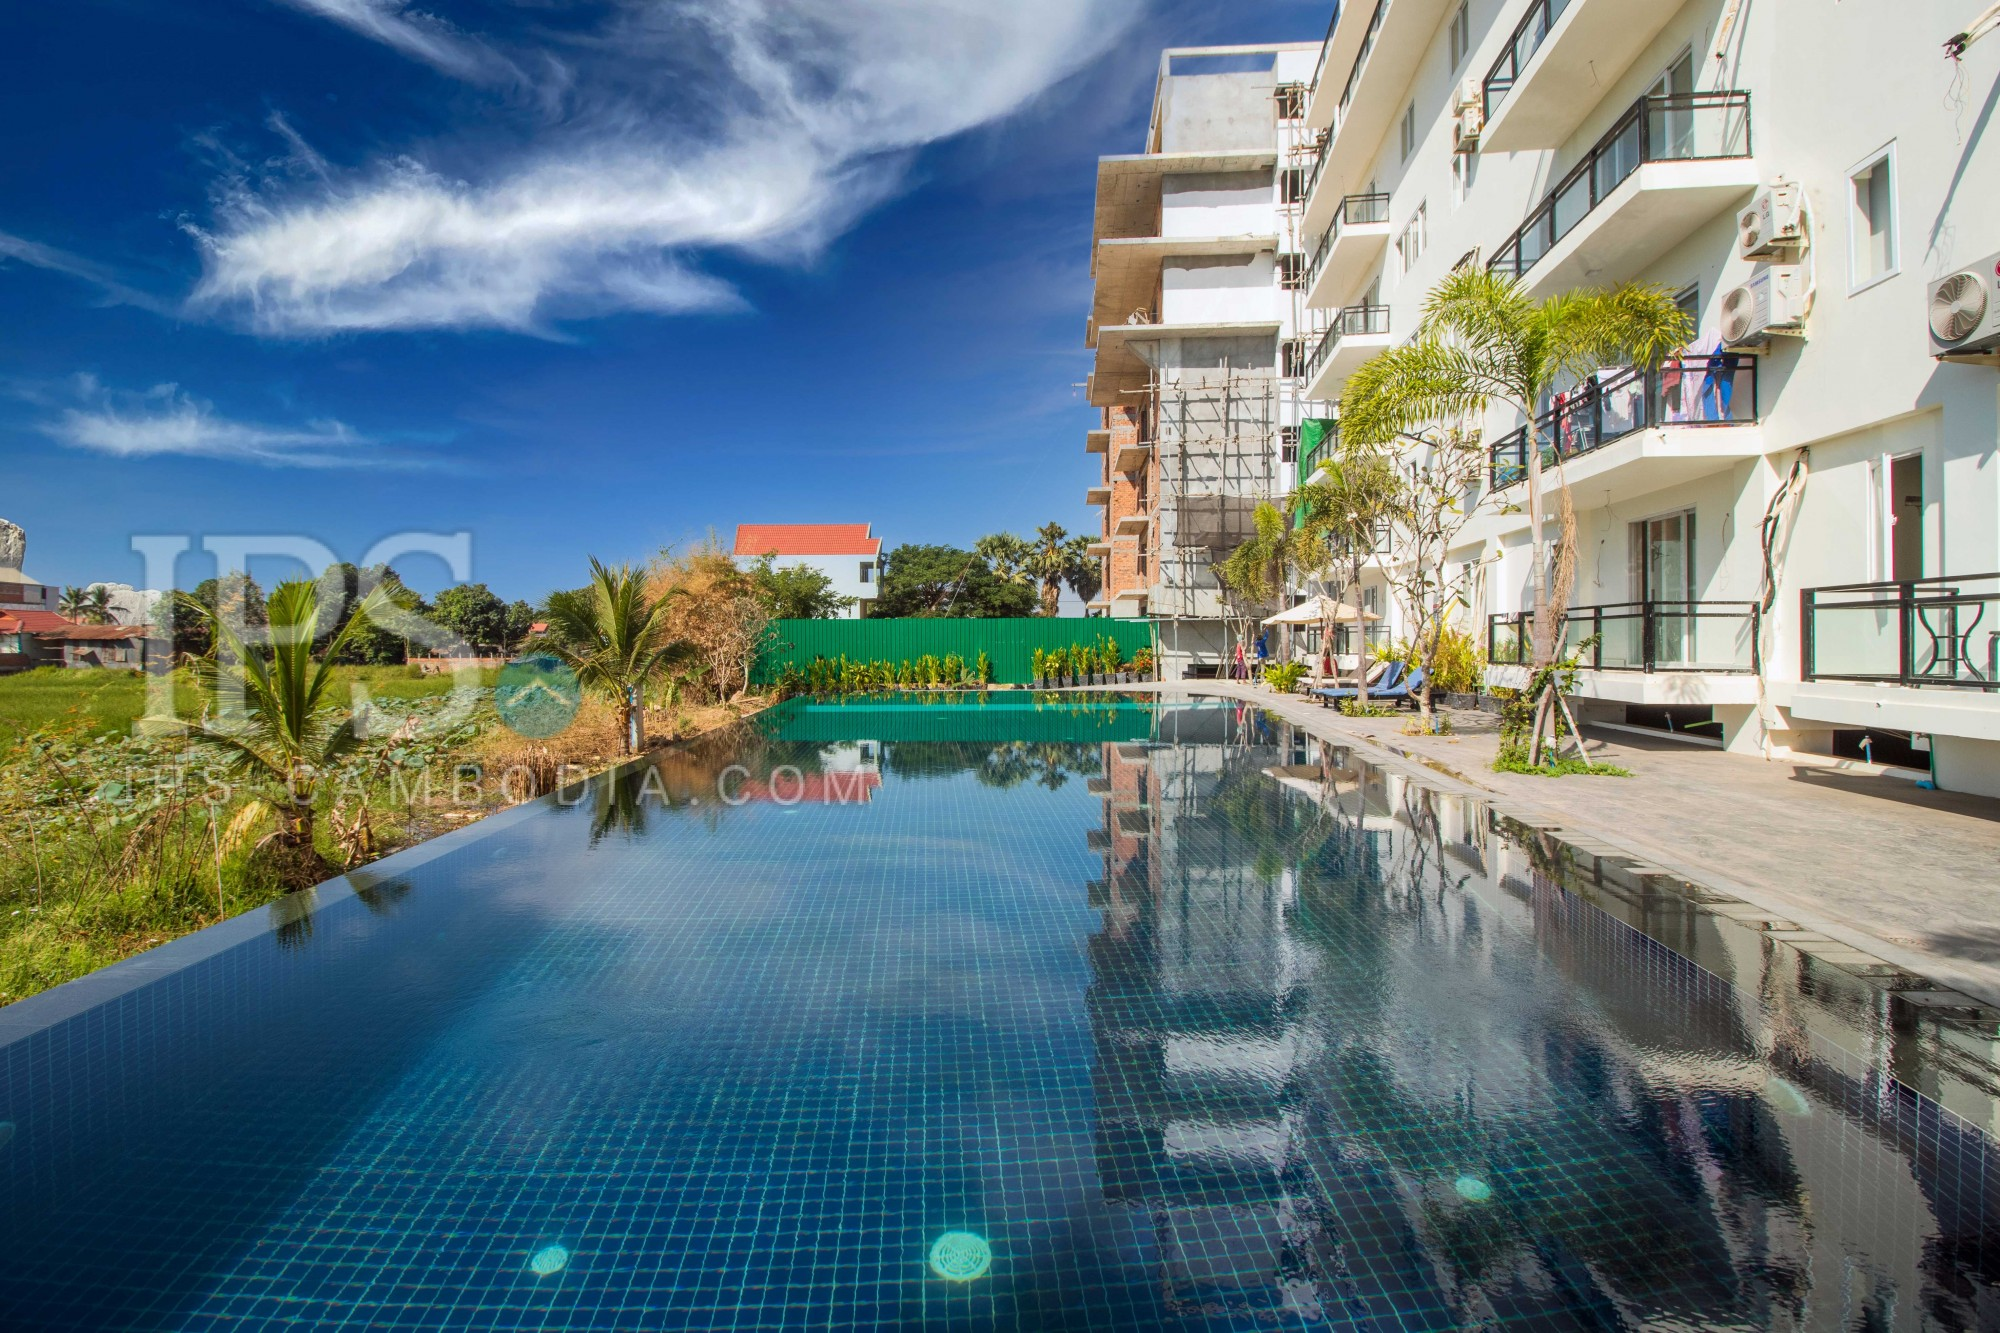 3 Bedroom Condo Unit For Sale - Svay Dangkum, Siem Reap